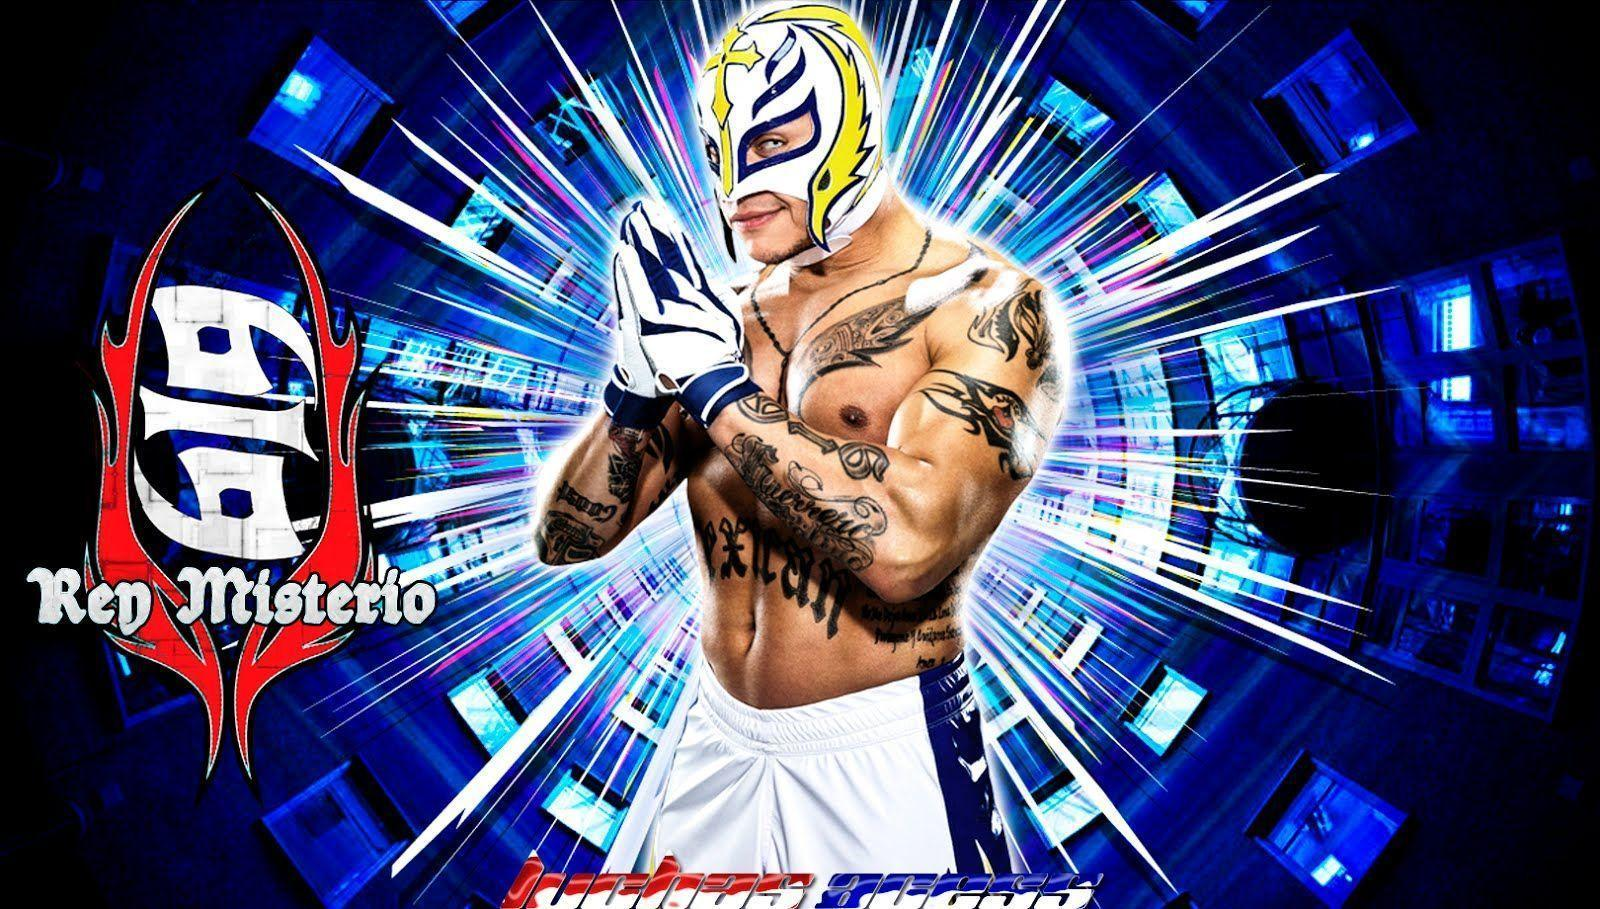 Lucha Libre Rey Misterio Rey Misterio Wallpapers 2016 Wallpaper Cave